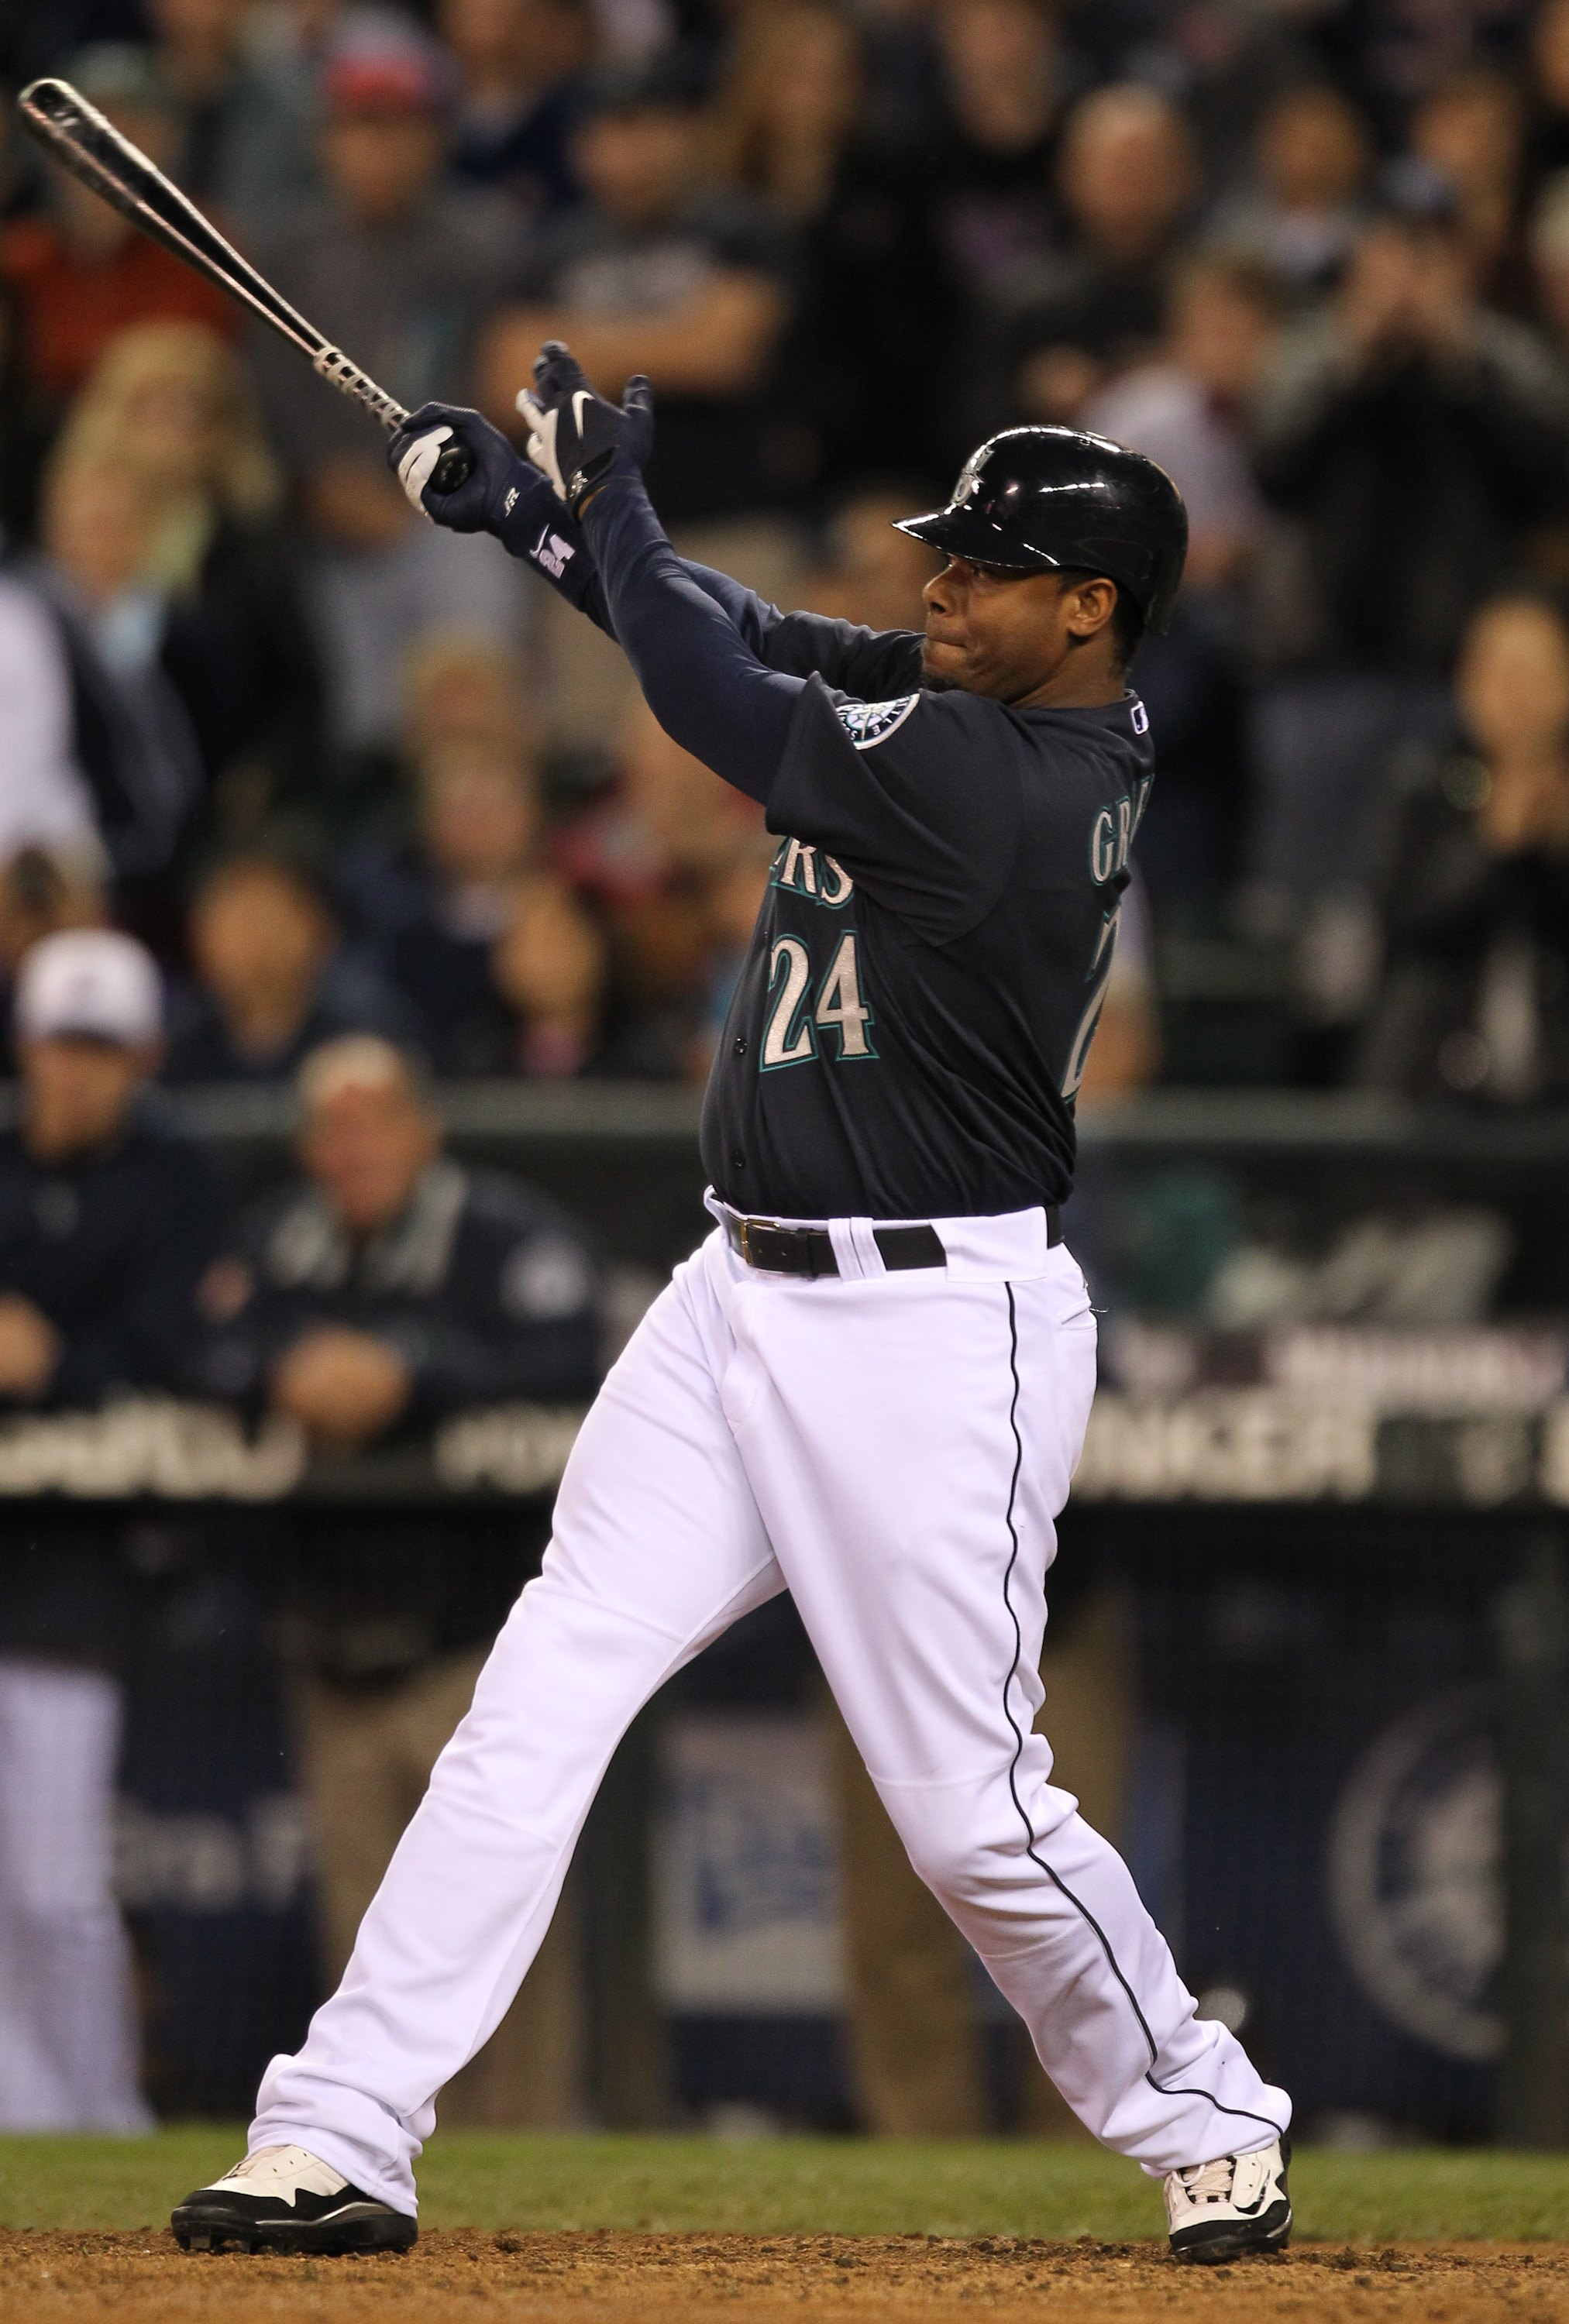 SEATTLE - MAY 31:  Ken Griffey Jr. #24 of the Seattle Mariners bats against the Minnesota Twins at Safeco Field on May 31, 2010 in Seattle, Washington. (Photo by Otto Greule Jr/Getty Images)